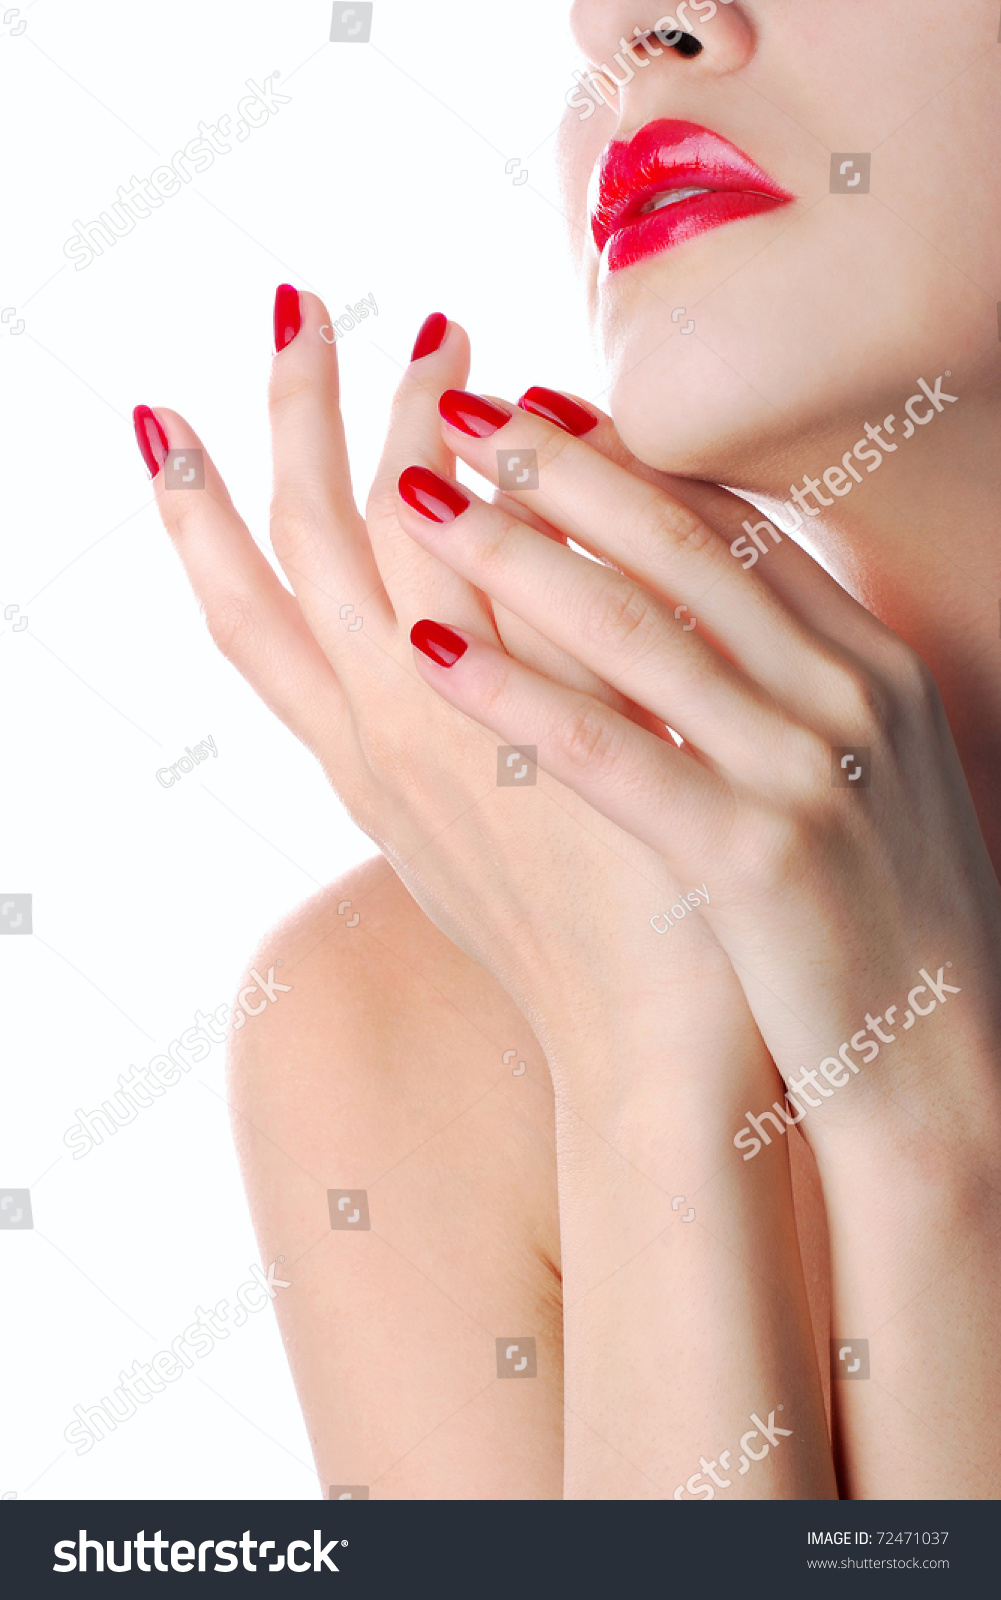 Lost fetish french manicure nail picture